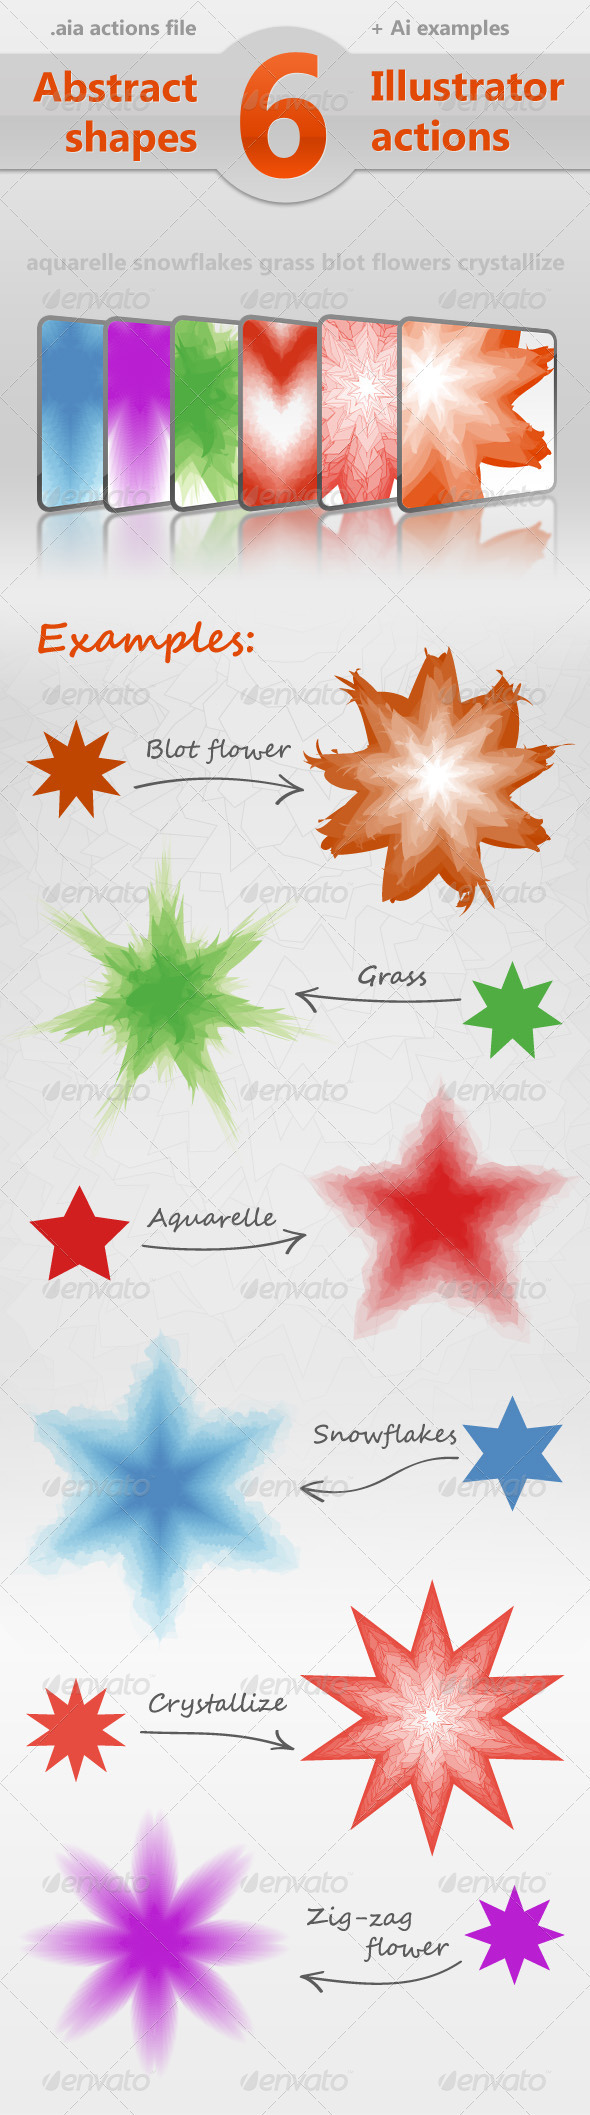 Abstract Shape Effects - 6 Illustrator Actions - Actions Illustrator